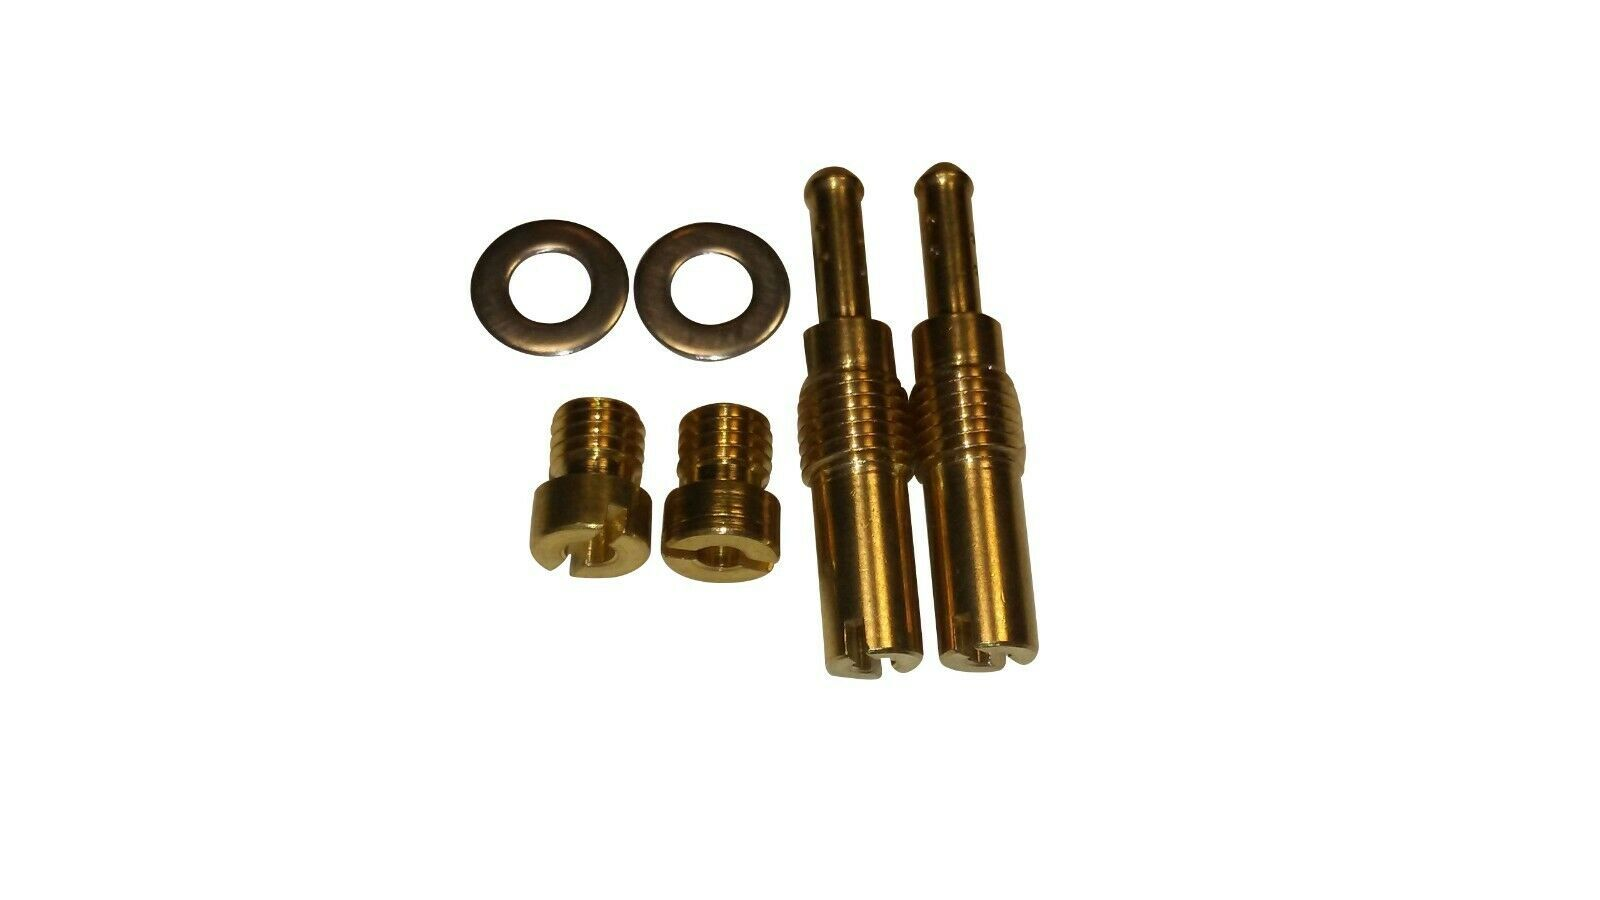 Primary image for CB450SC Jet Kit BASIC Stage 2 CB 450 SC Nighthawk 1985-86 Carb Pilot-40 Main-130